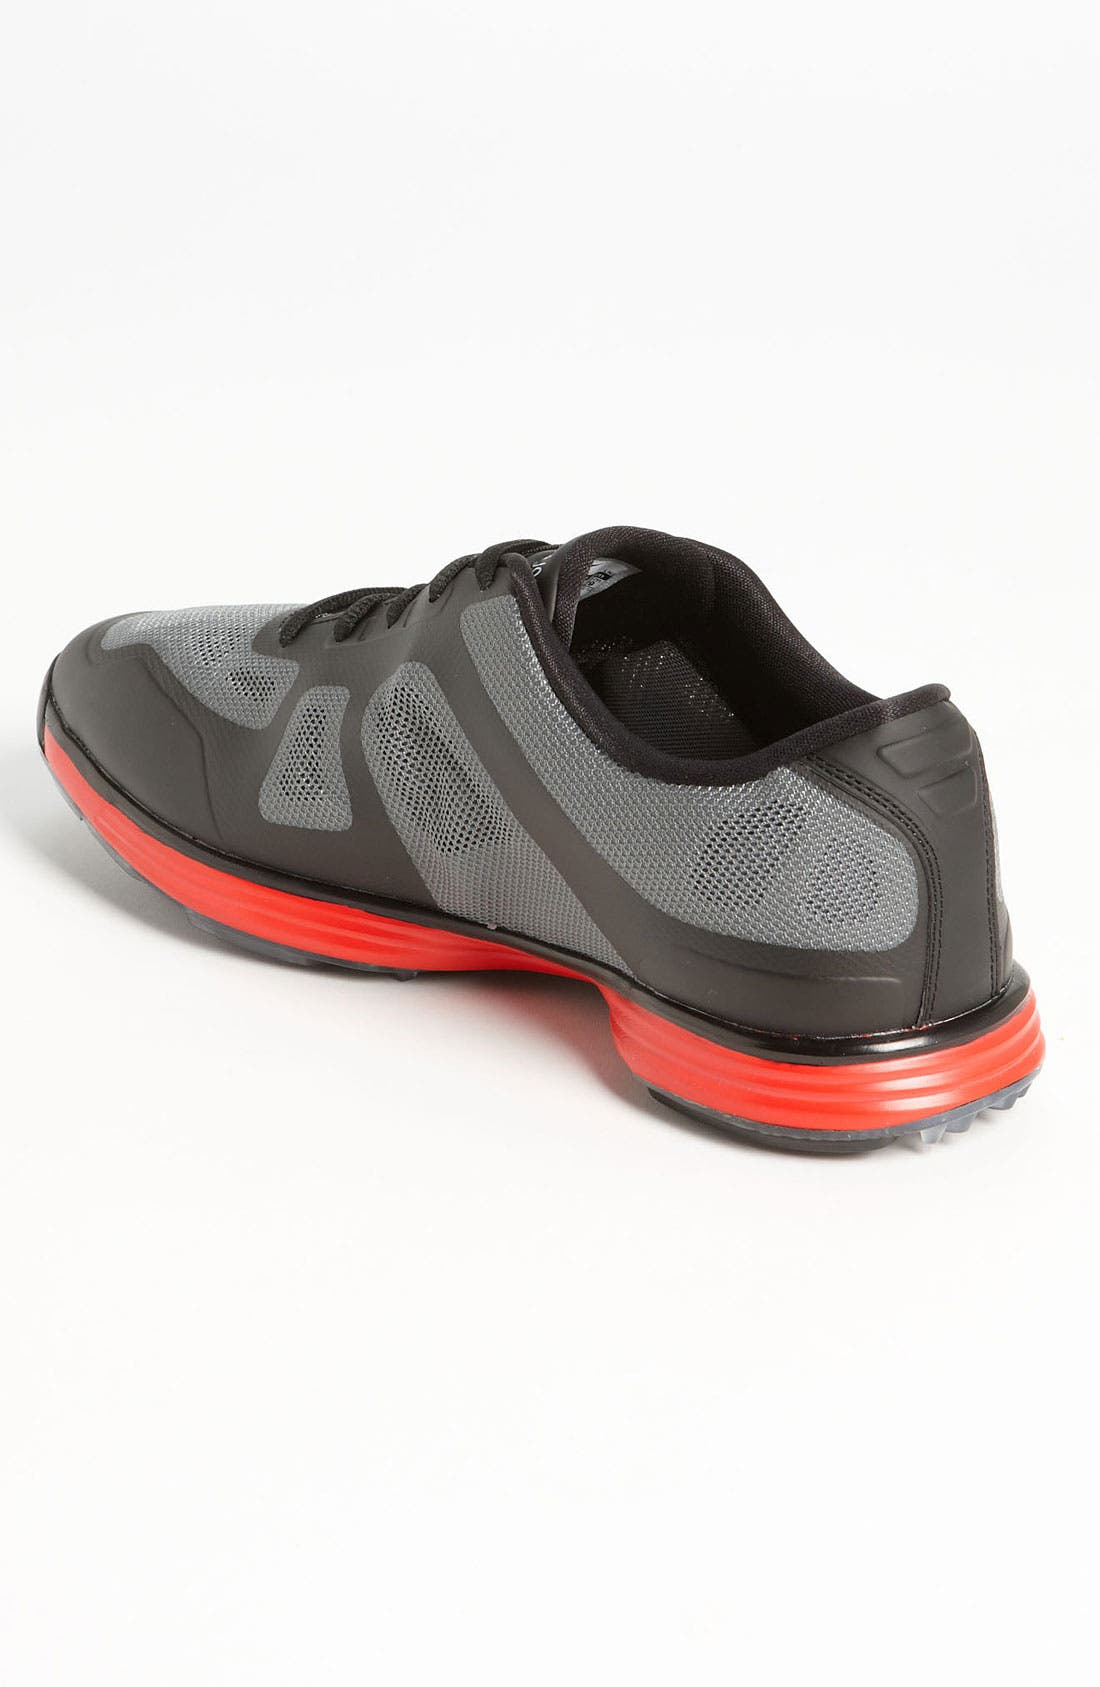 Alternate Image 2  - Nike 'Lunar Ascend' Golf Shoe (Men)